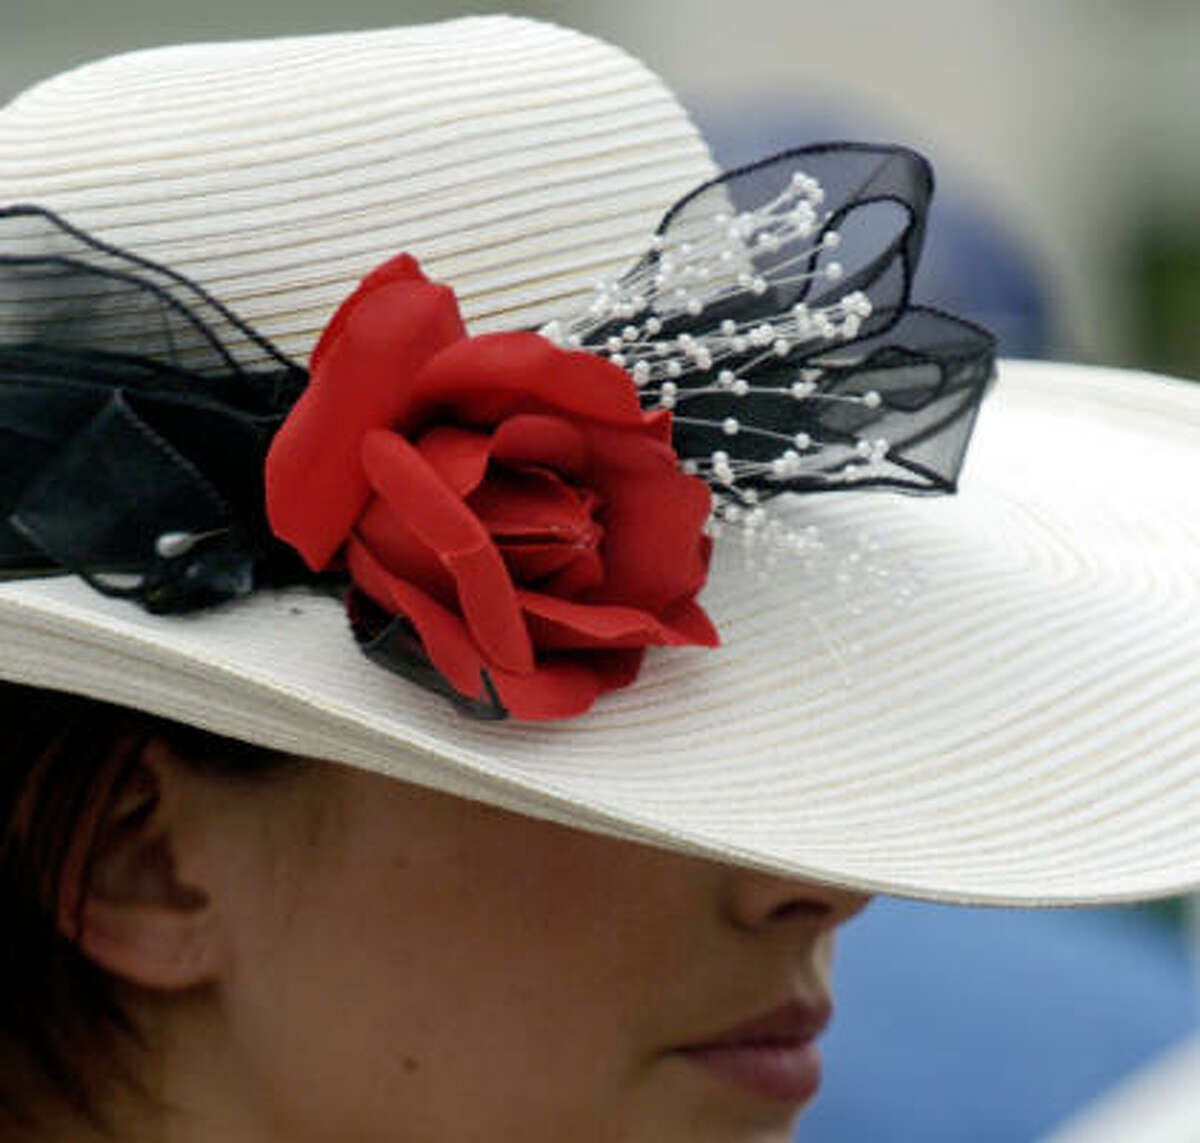 The Kentucky Derby is not just about horse racing. It's a chance for women to roll out their fancy hats and dresses and show off. Here are just a few from over the years.